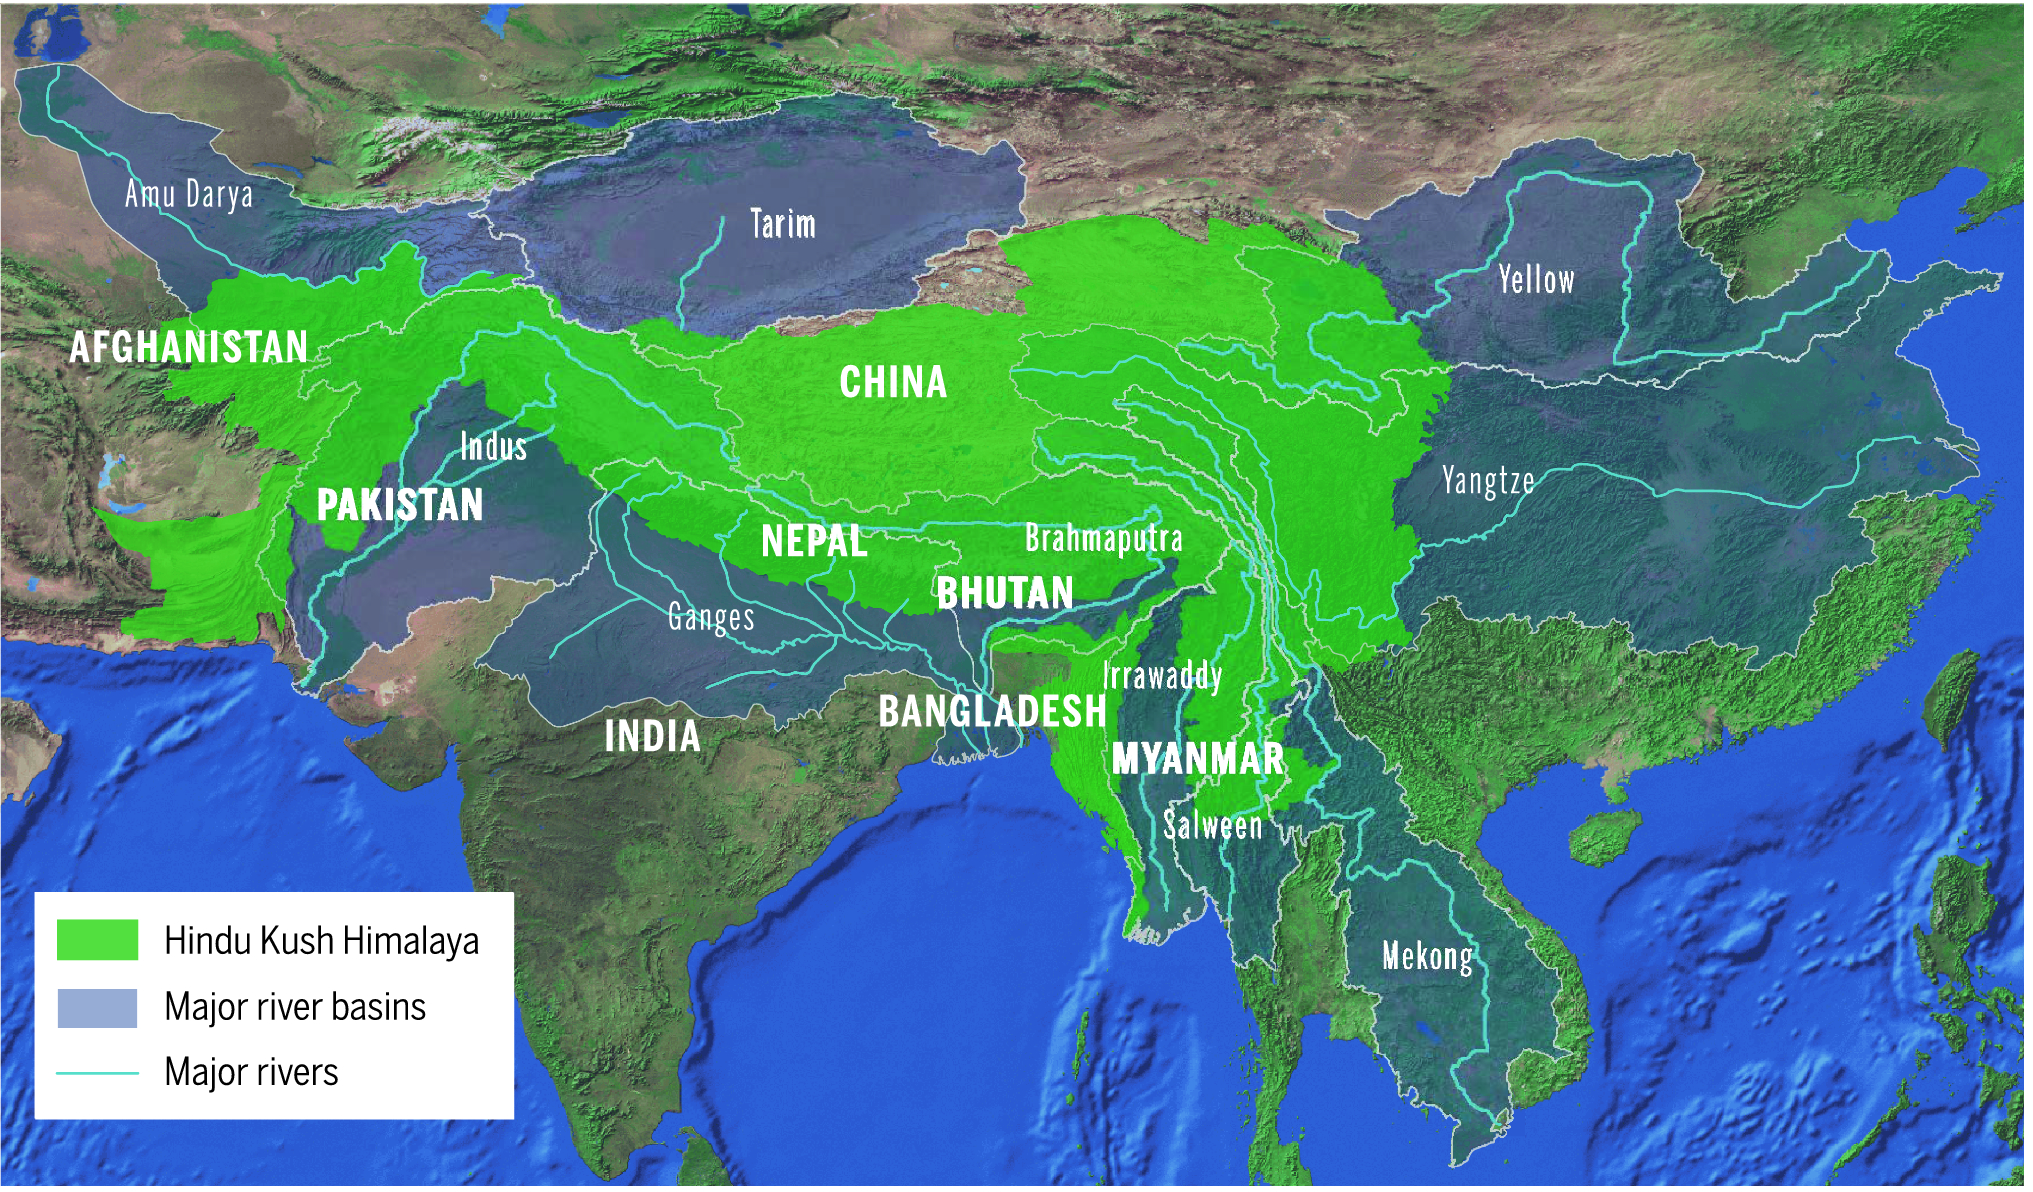 Introduction to the Hindu Kush Himalaya essment | SpringerLink on ethiopian mountains map, zagros mountains map, paropamisus mountains map, india mountains map, sudan mountains map, mesopotamia mountains map, egypt mountains map, kunlun mountains map, ghana mountains map, hindu mountains map, andes mountains map, angel mountains map, tibetan mountains map, maya mountains map, greece mountains map, china mountains map, israel mountains map, afghanistan mountains map, south asia mountains map, apennine mountains map,